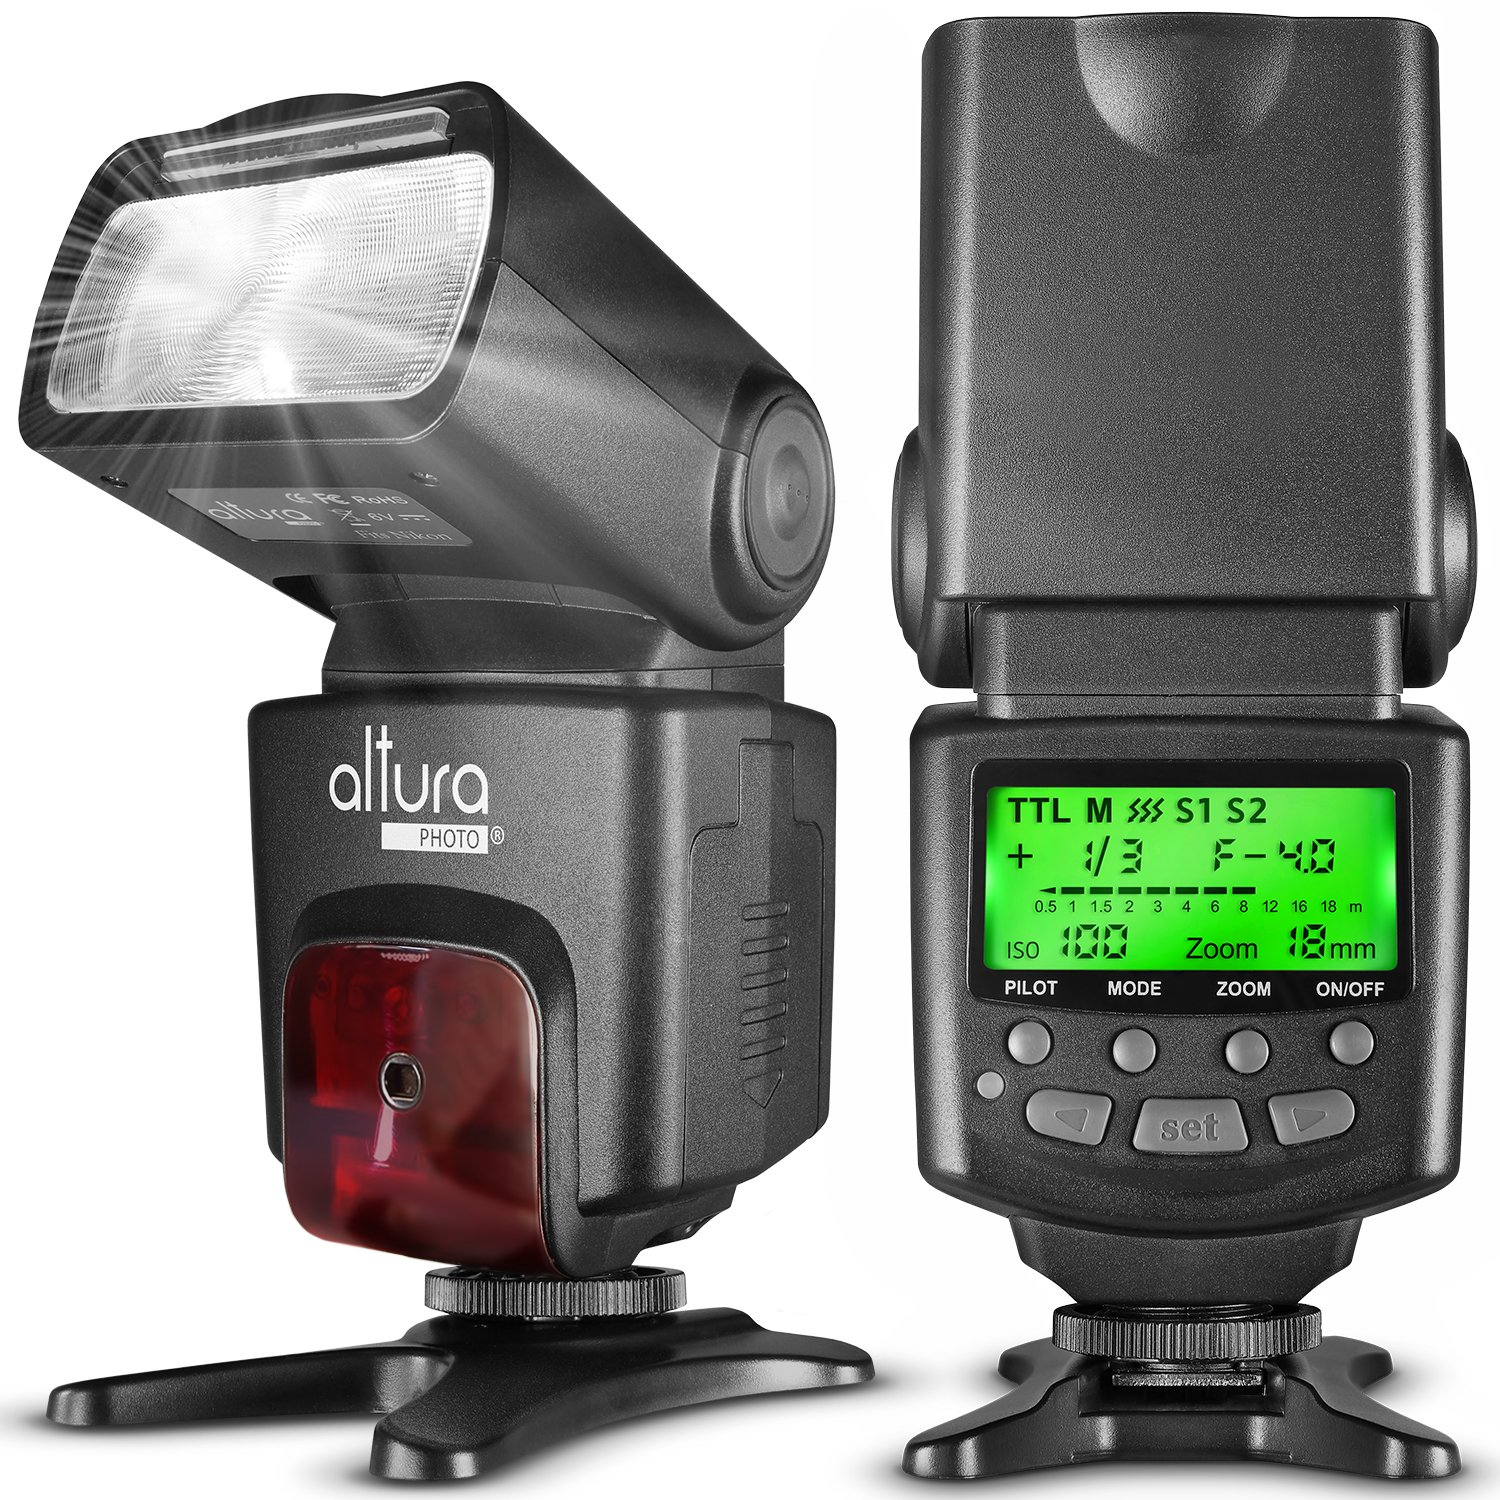 Altura Photo AP-N1001 Speedlite Flash for Nikon DSLR Camera with Auto-Focus, I-TTL, Wireless Trigger Slave Function by Altura Photo